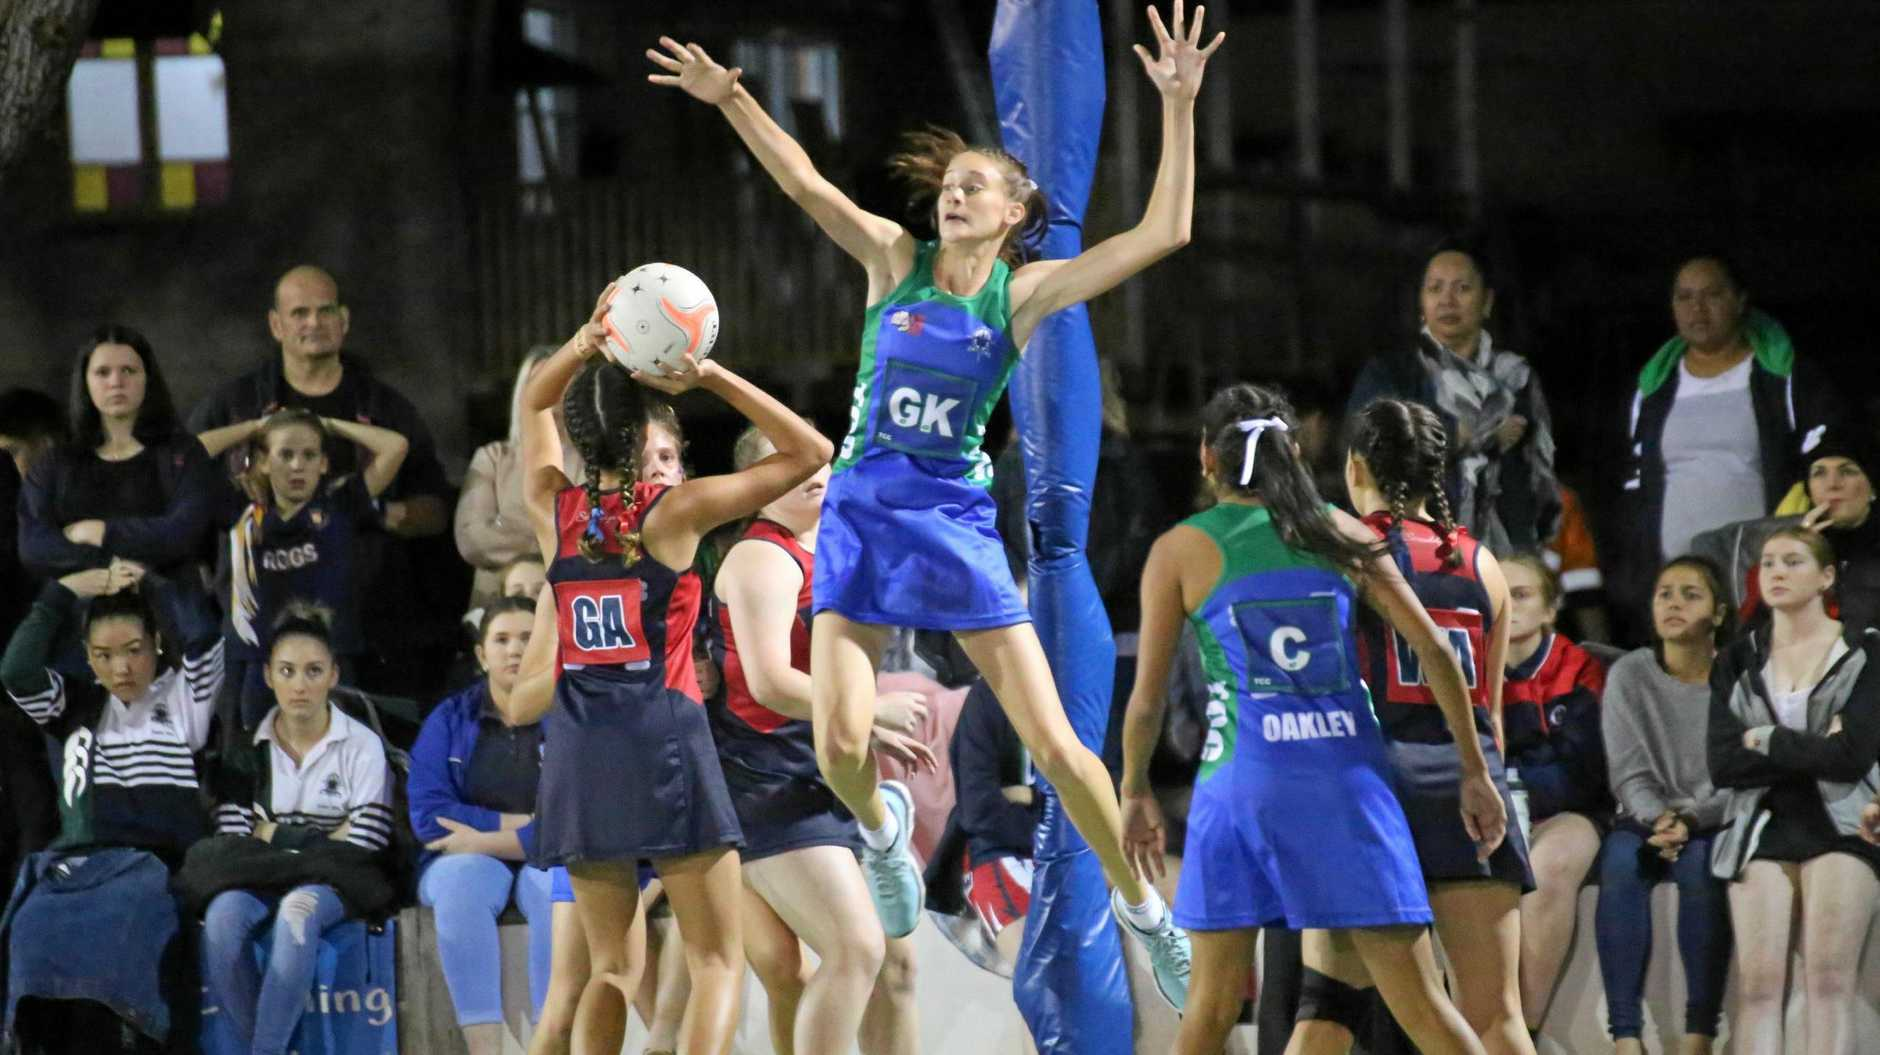 Isabelle Shearer launches into action for The Cathedral College netball team.